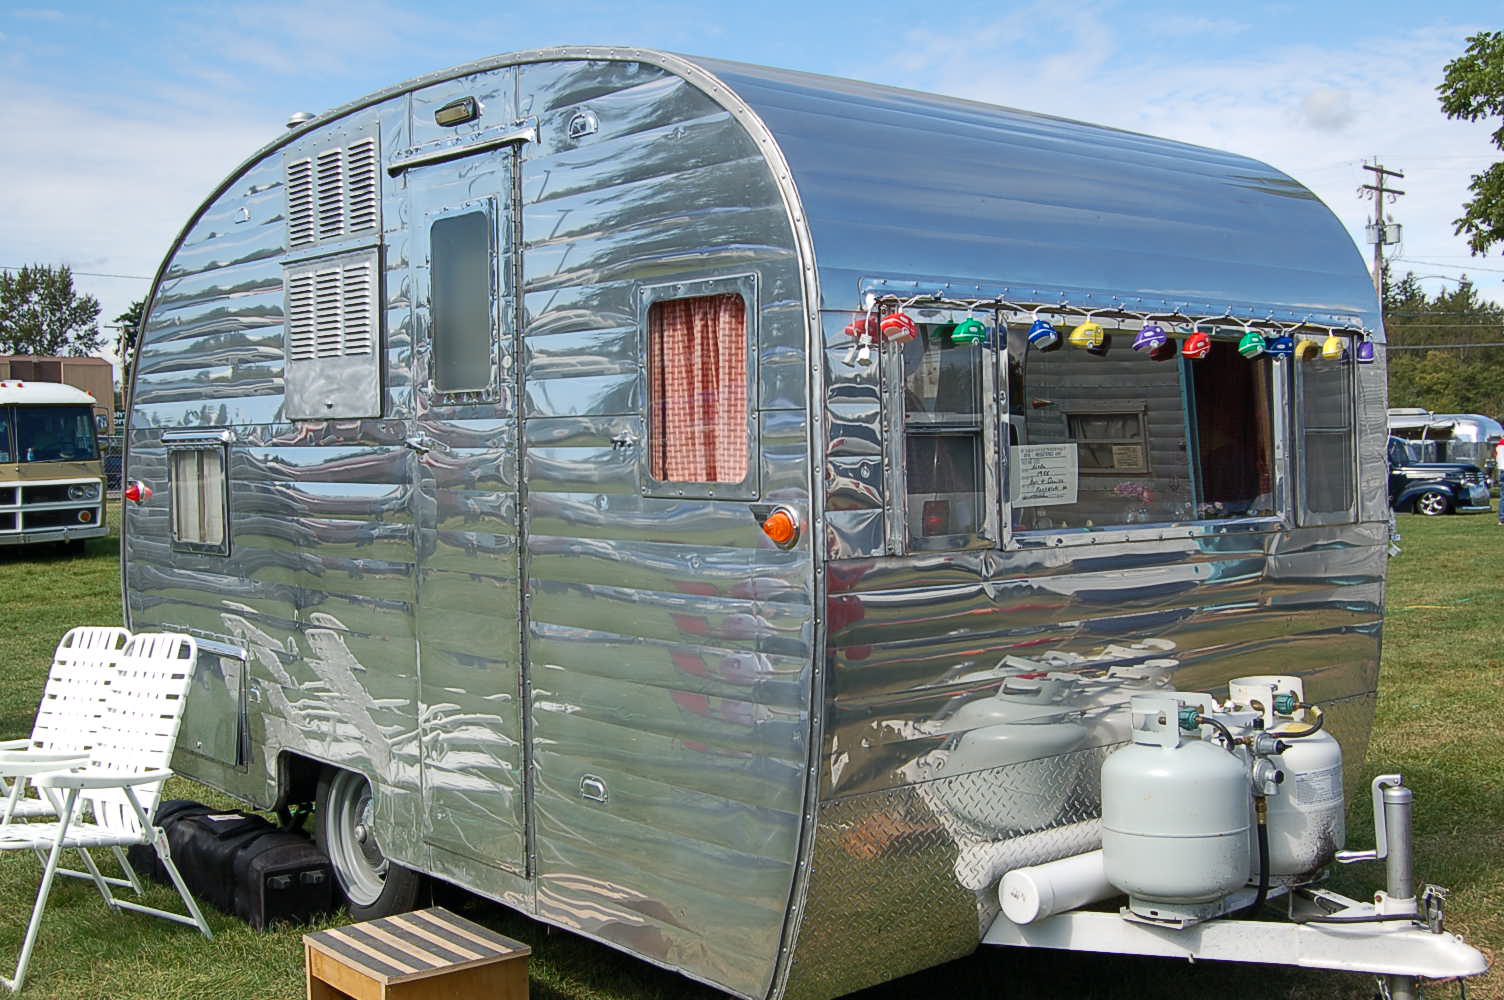 Vintage Aloha Trailer Pictures And History From Oldtrailer Com